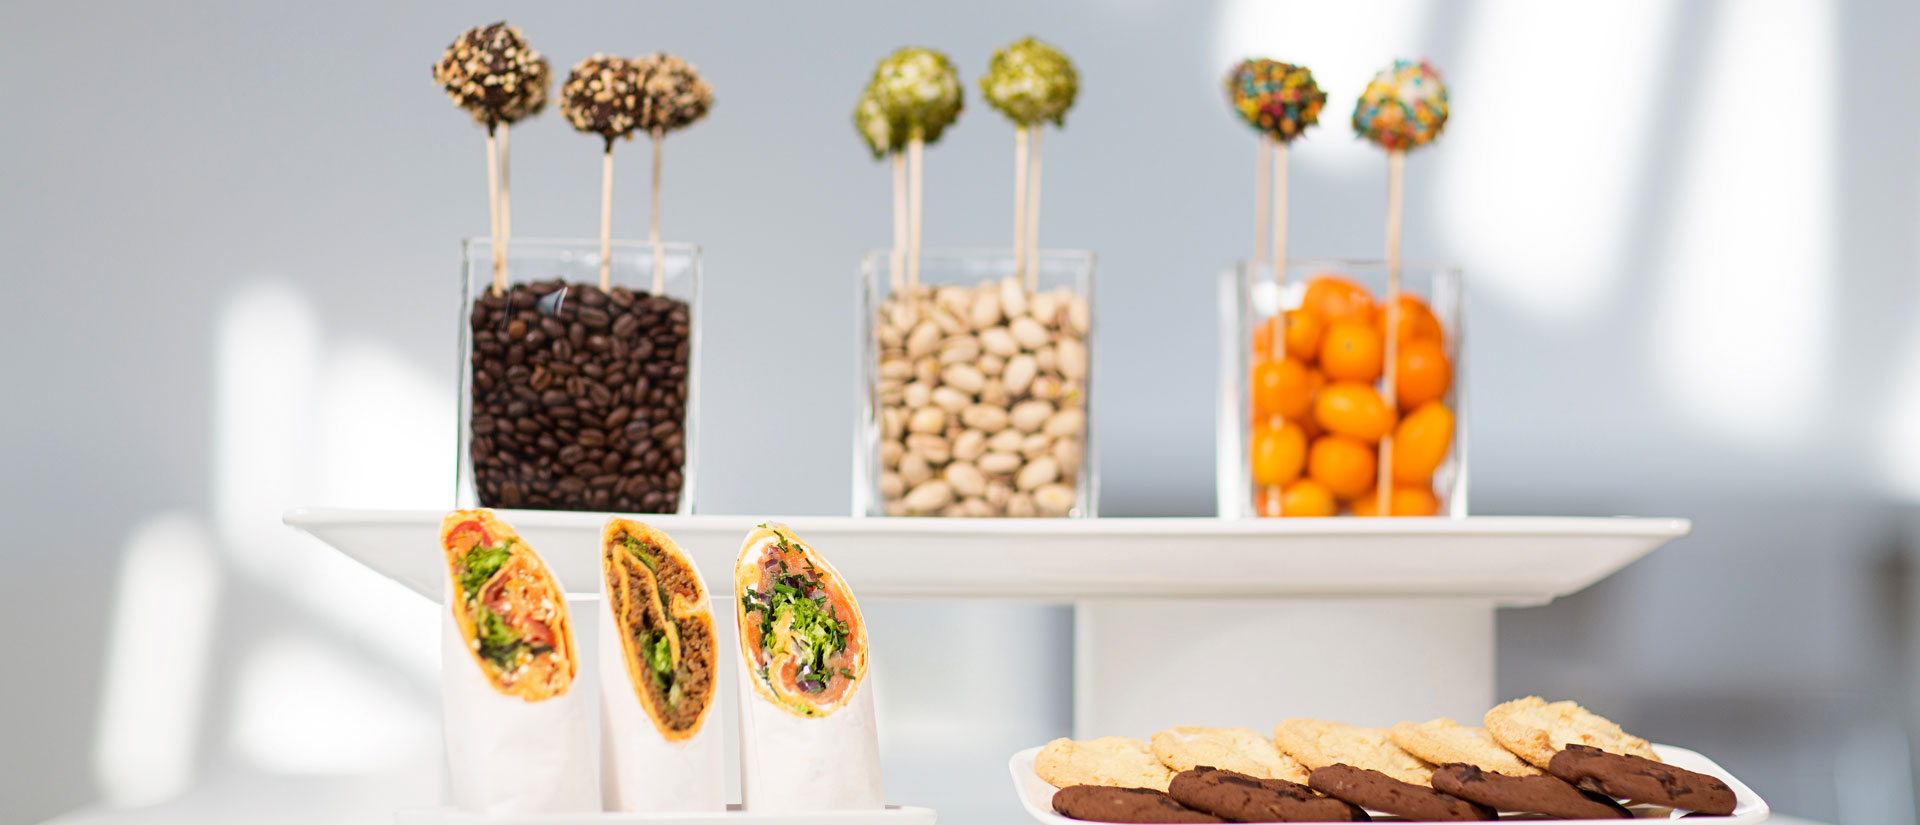 buehne_messe_catering_2_detail